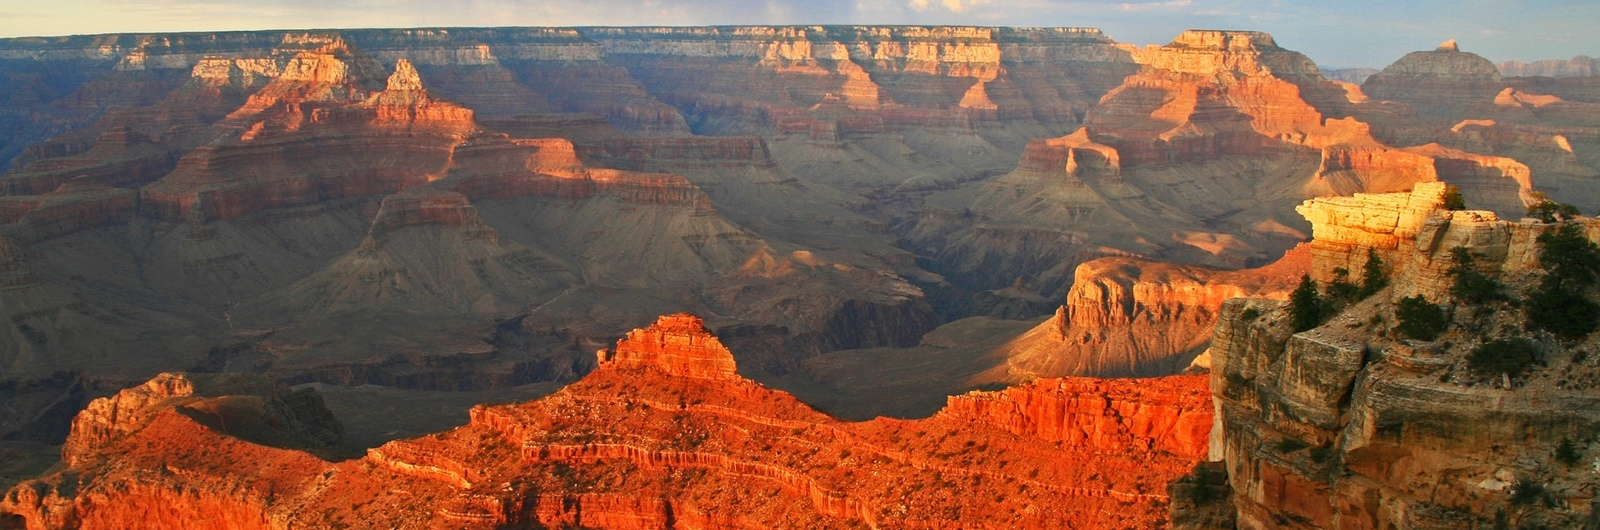 grand canyon region header